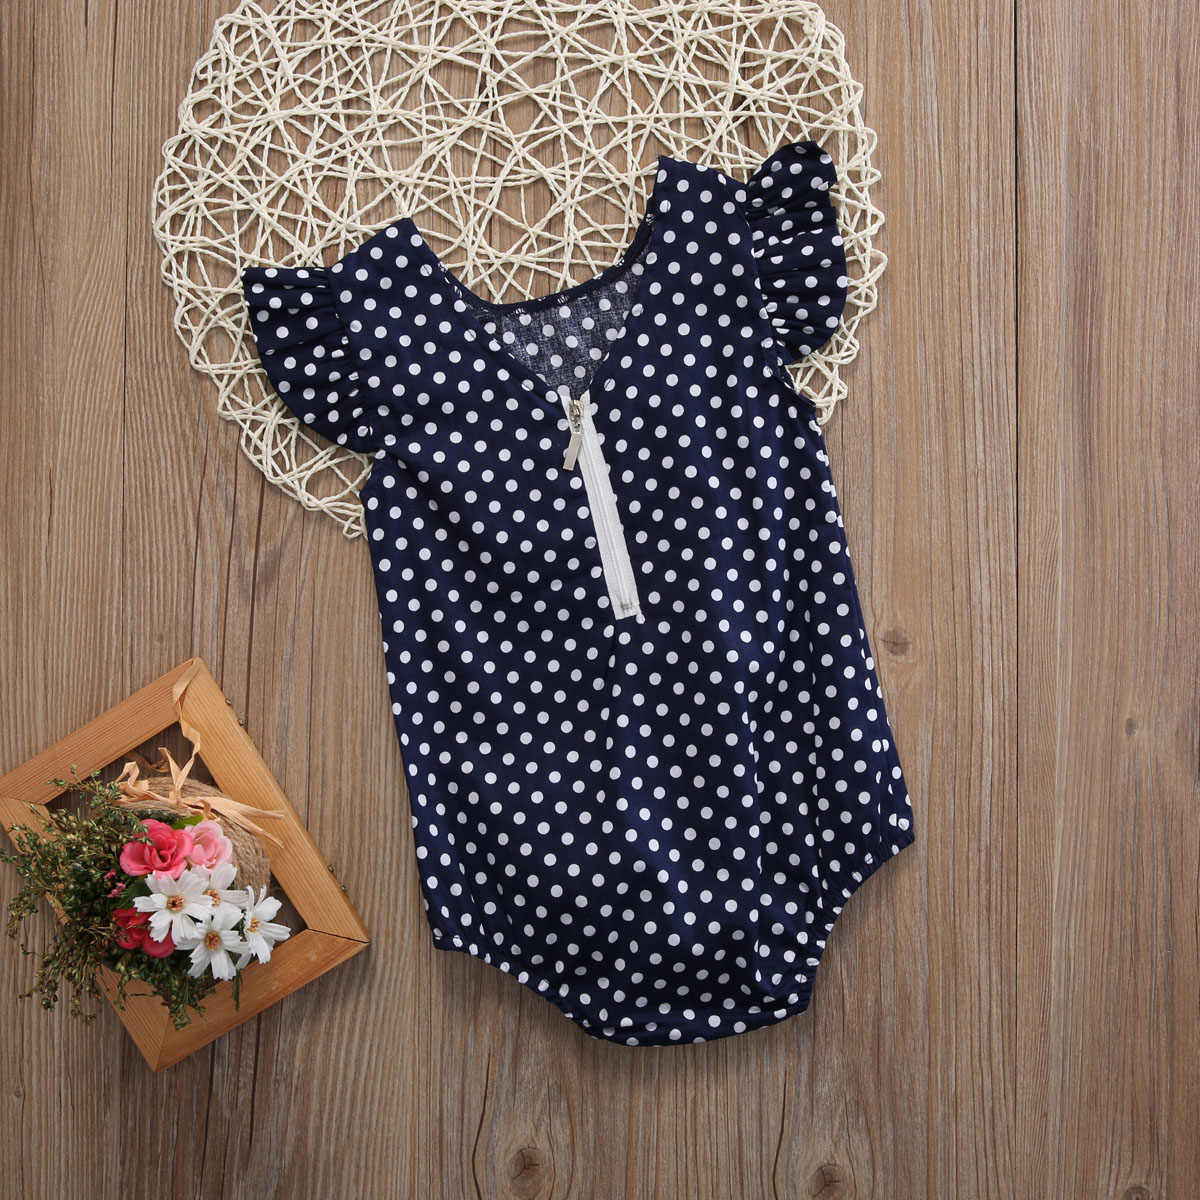 06260ccfab8e ... Newborn Toddler Baby Girl Clothes Rompers Jumpsuit Sunsuit Outfits 0-24M